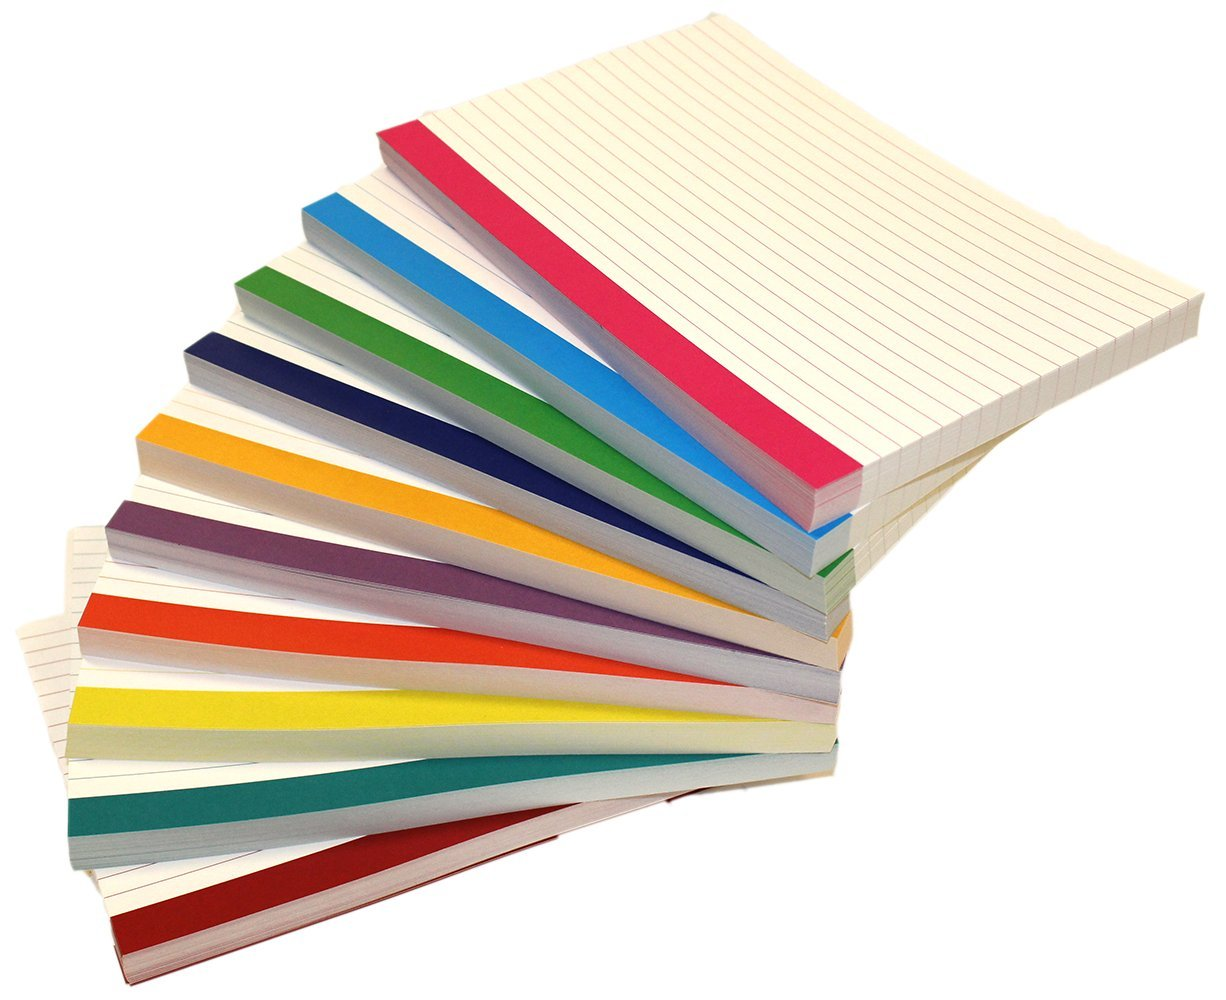 Debra Dale Designs - Color Bar Ruled Single Sided Index Cards - 5 x 8 Inches - White - 500 (50 each of 10 colors) - Wrapped in 2 packages of 250 - Standard 110# Index Card Stock - 199 GSM - .009 Thick